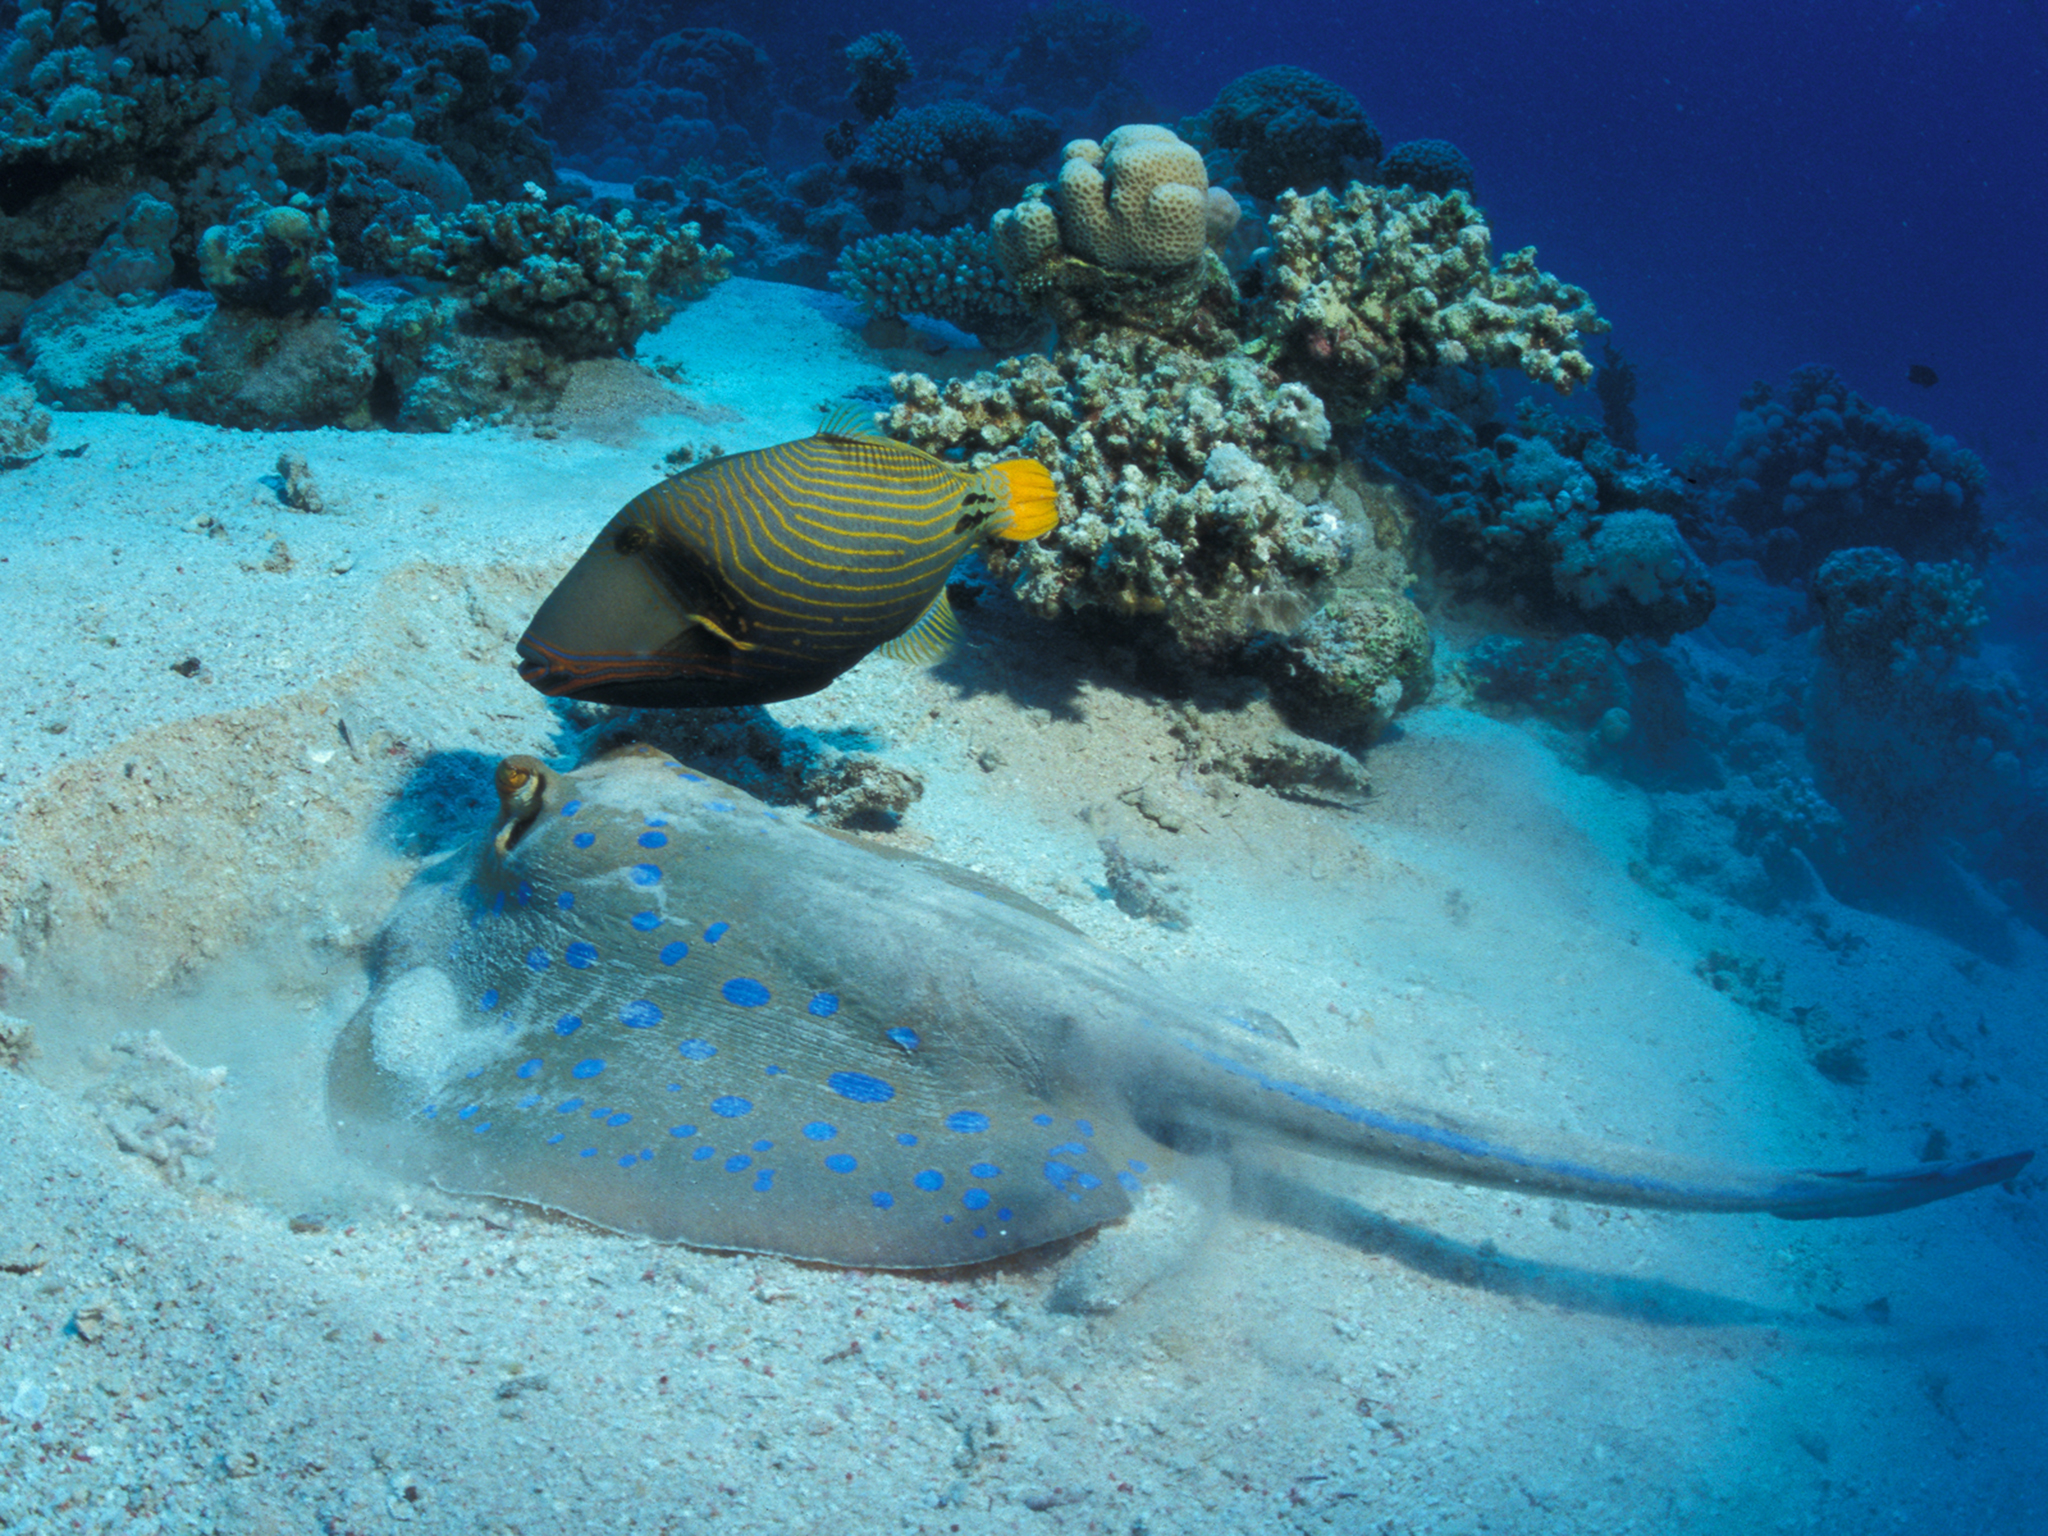 Stingray and Triggerfish